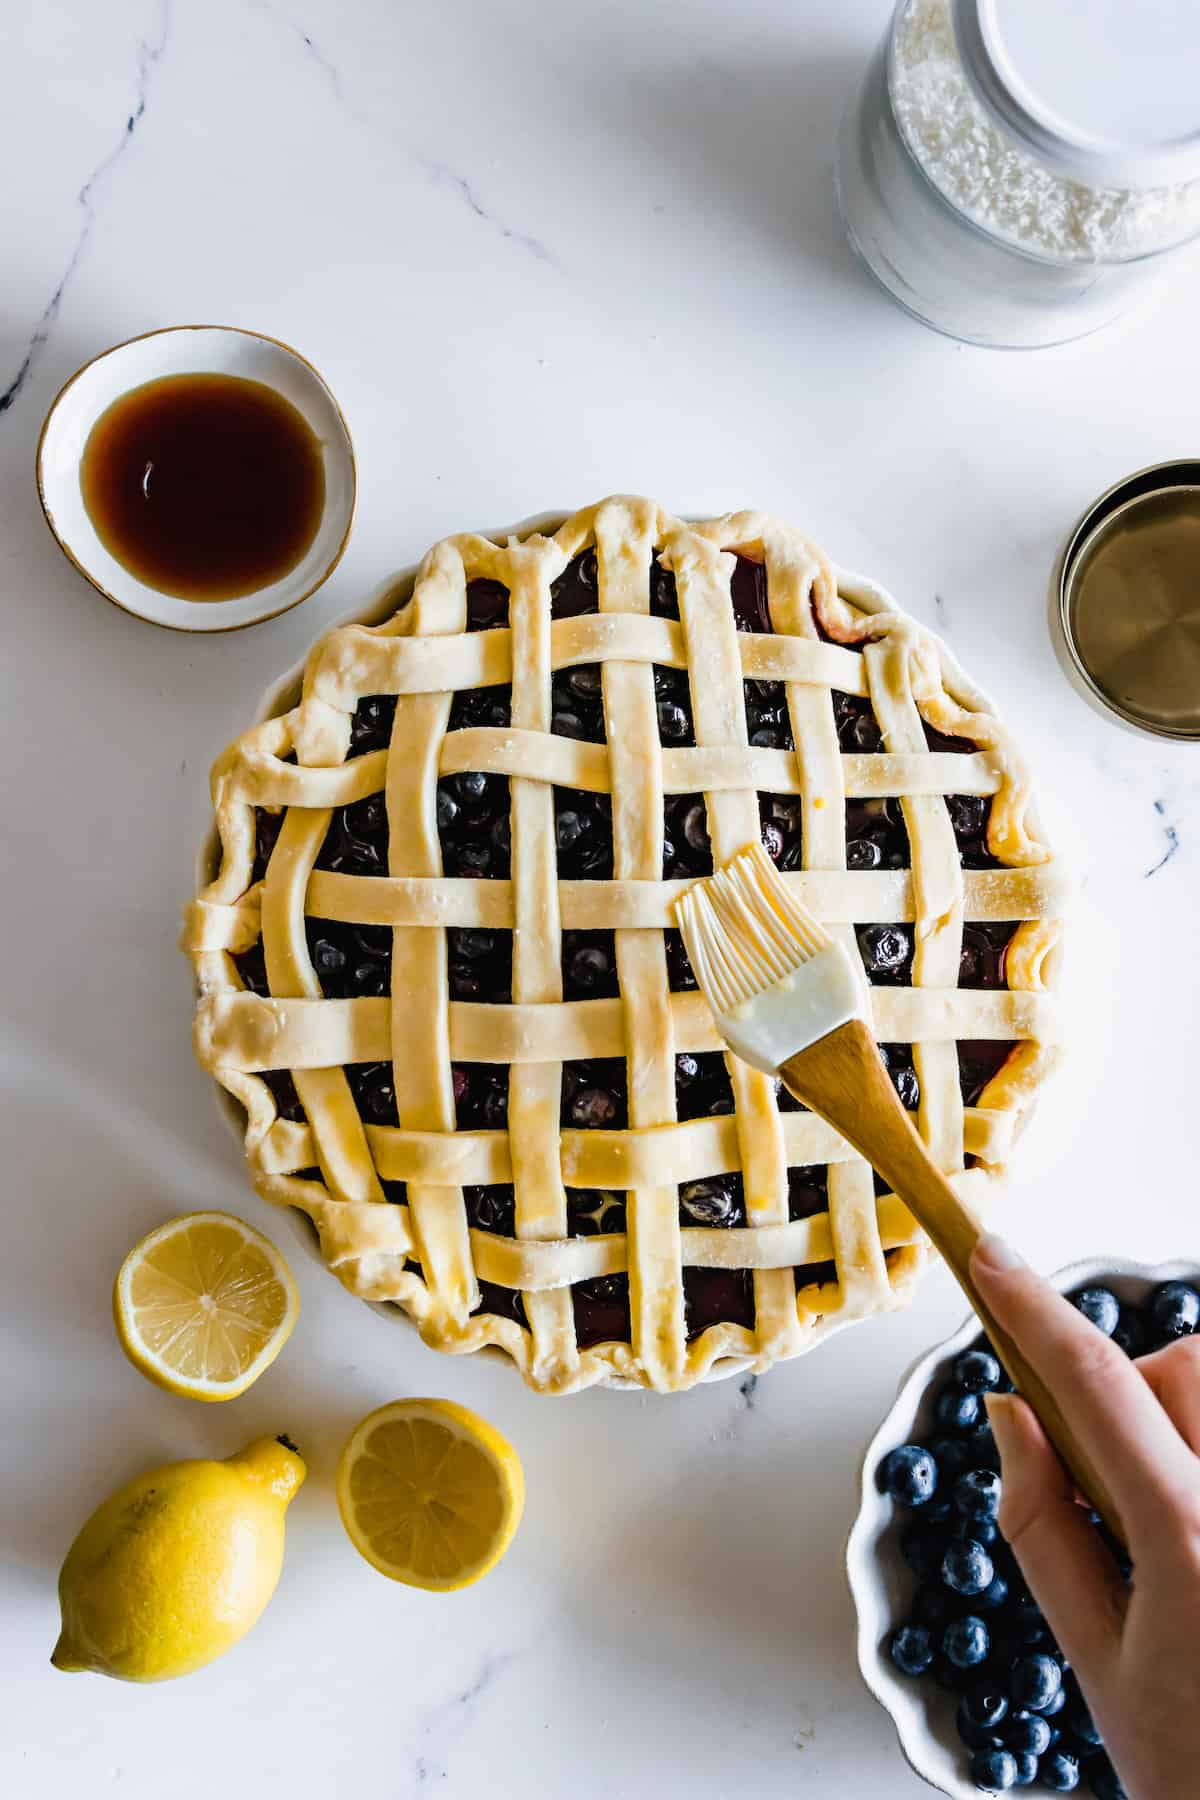 Eggwash Being Brushed Over a Blueberry Pie with a Pastry Brush